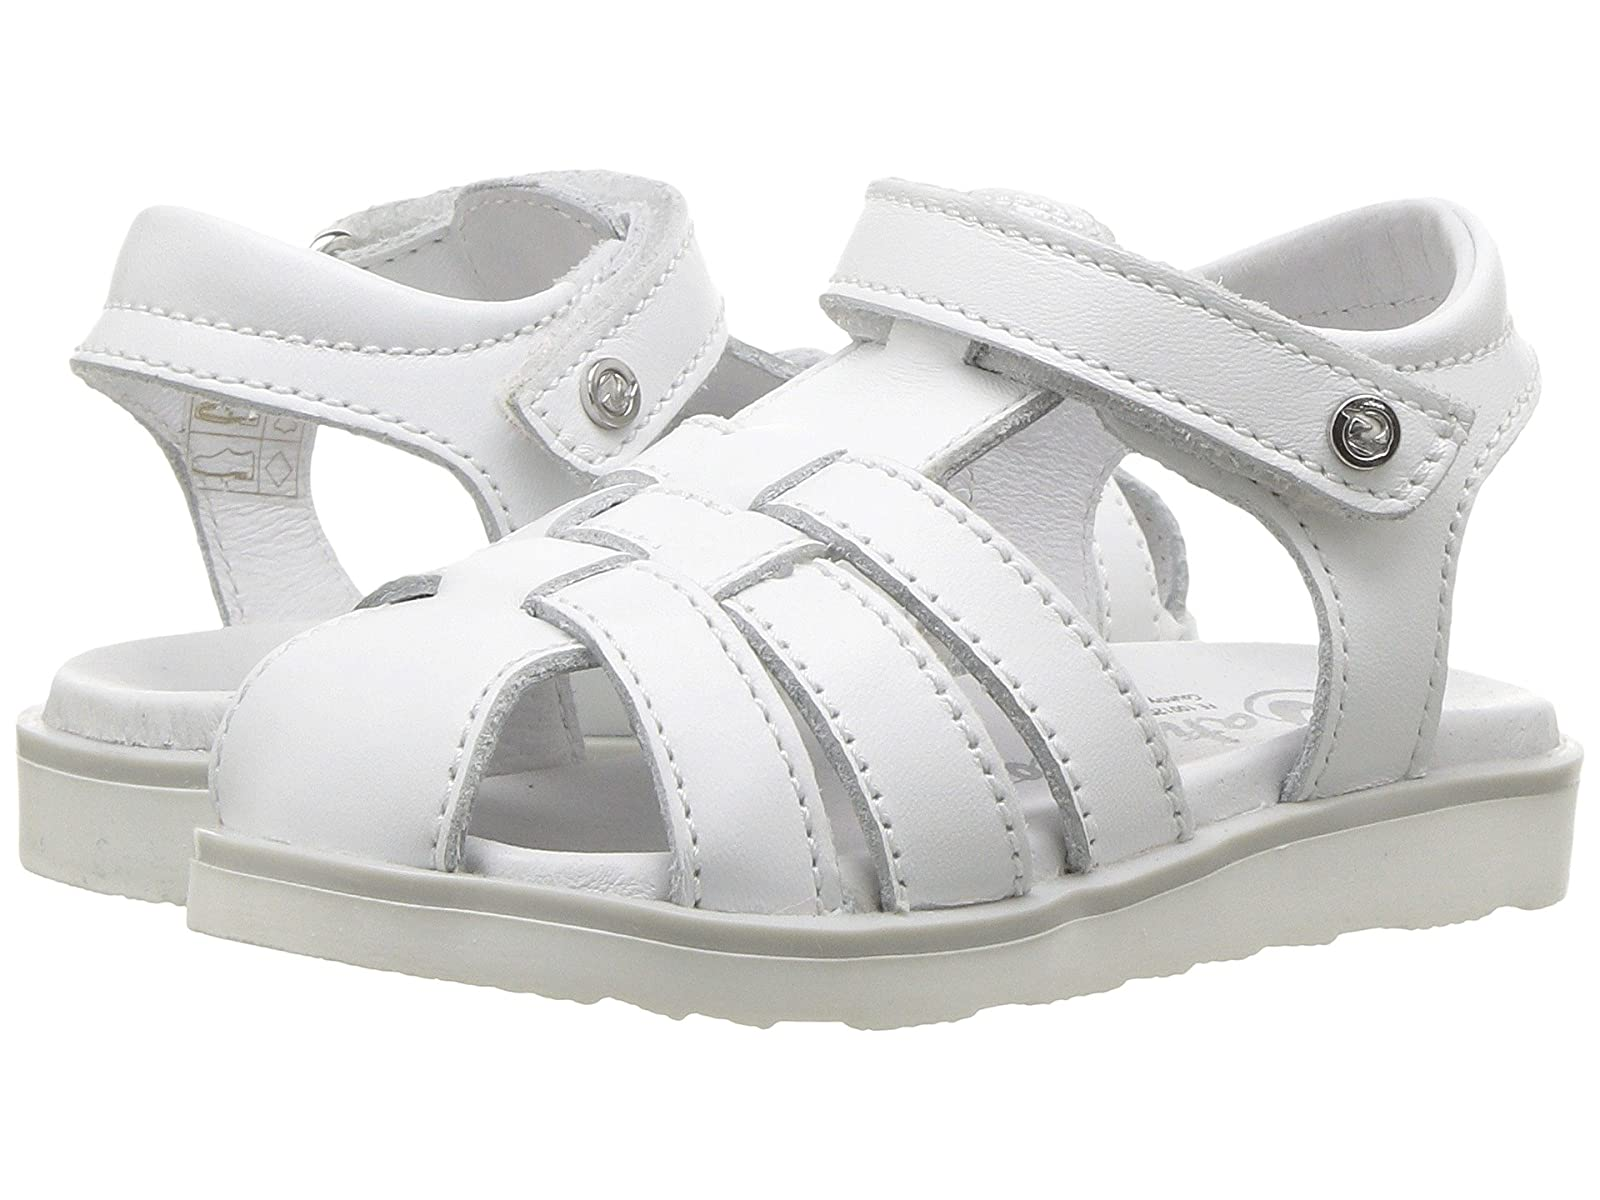 Naturino 5004 SS18 (Toddler/Little Kid)Atmospheric grades have affordable shoes